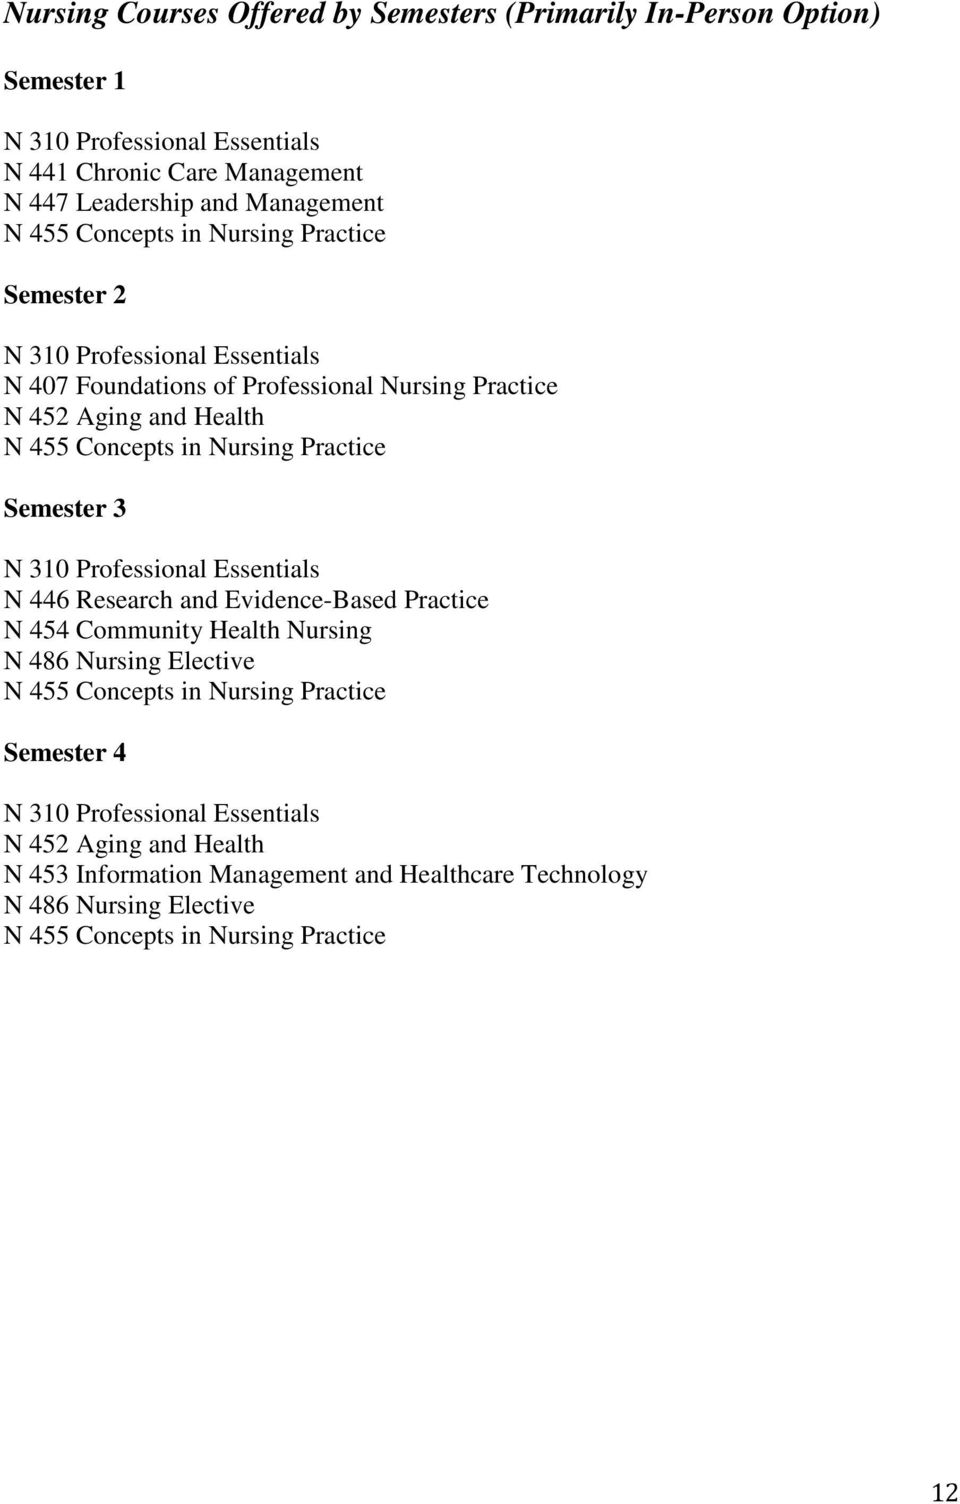 Practice Semester 3 N 310 Professional Essentials N 446 Research and Evidence-Based Practice N 454 Community Health Nursing N 486 Nursing Elective N 455 Concepts in Nursing